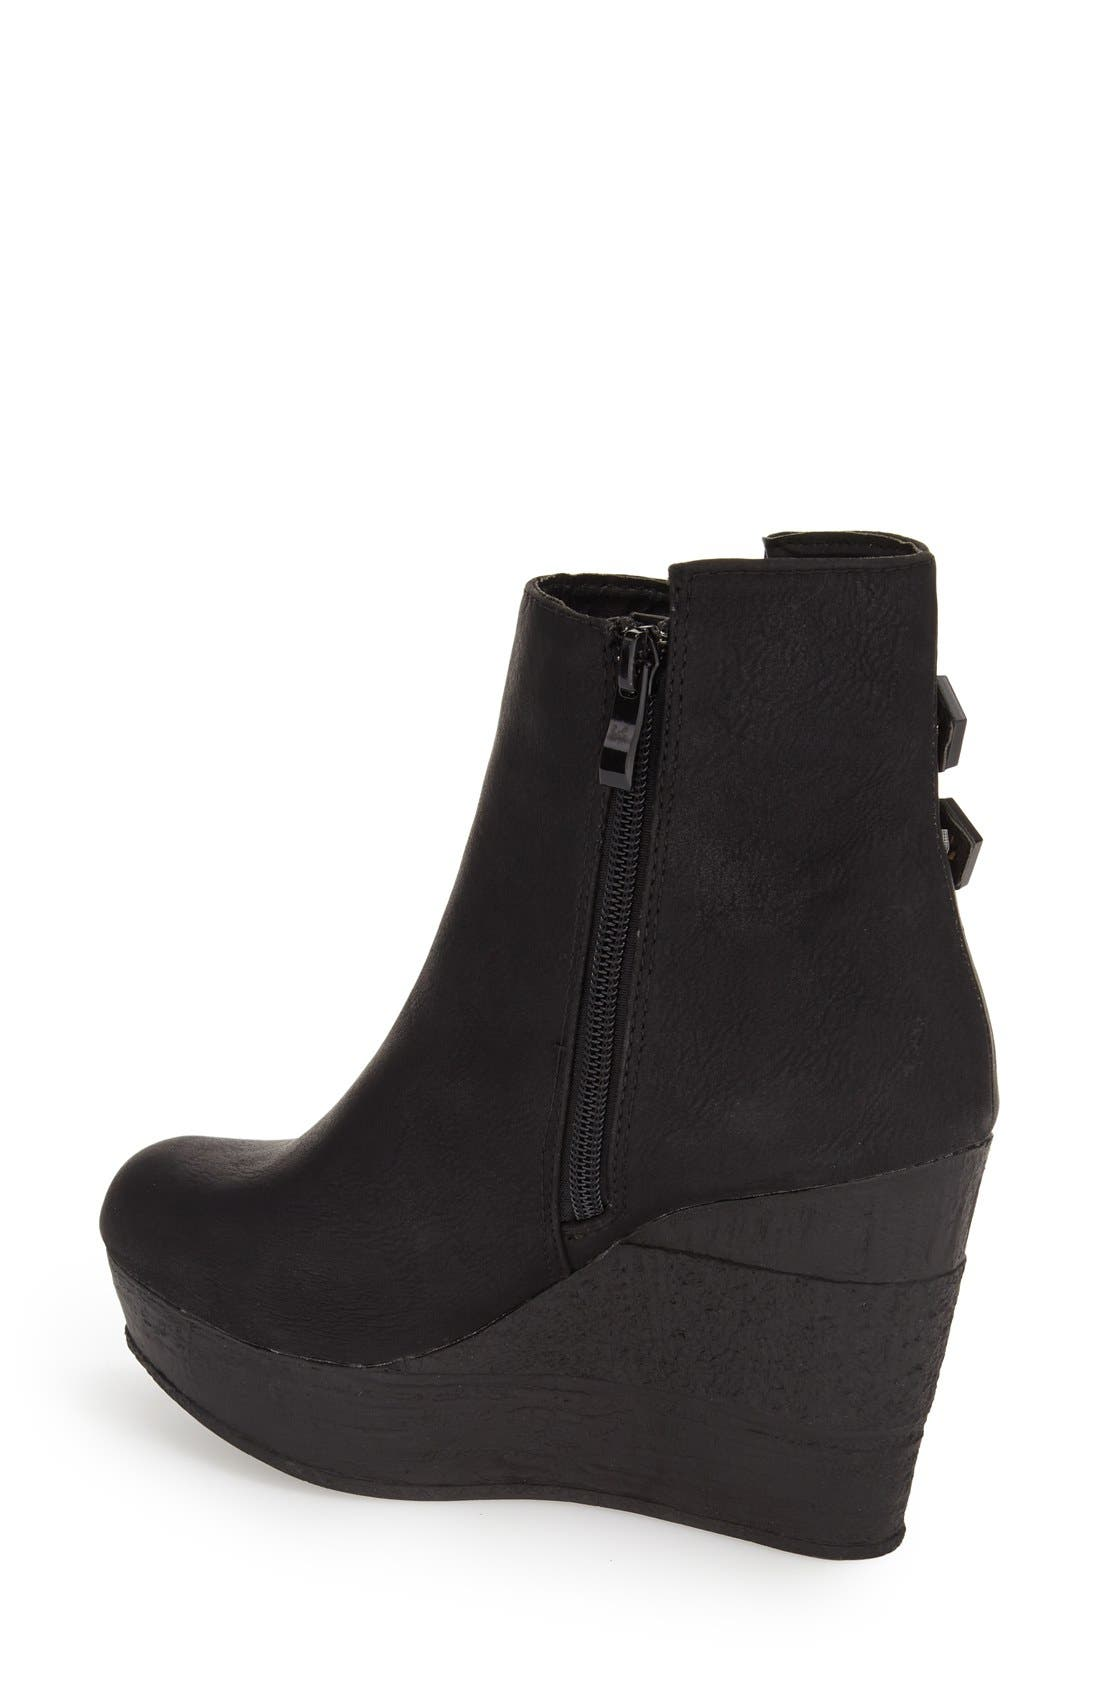 Alternate Image 2  - Sbicca 'Woodway' Wedge Bootie (Women)